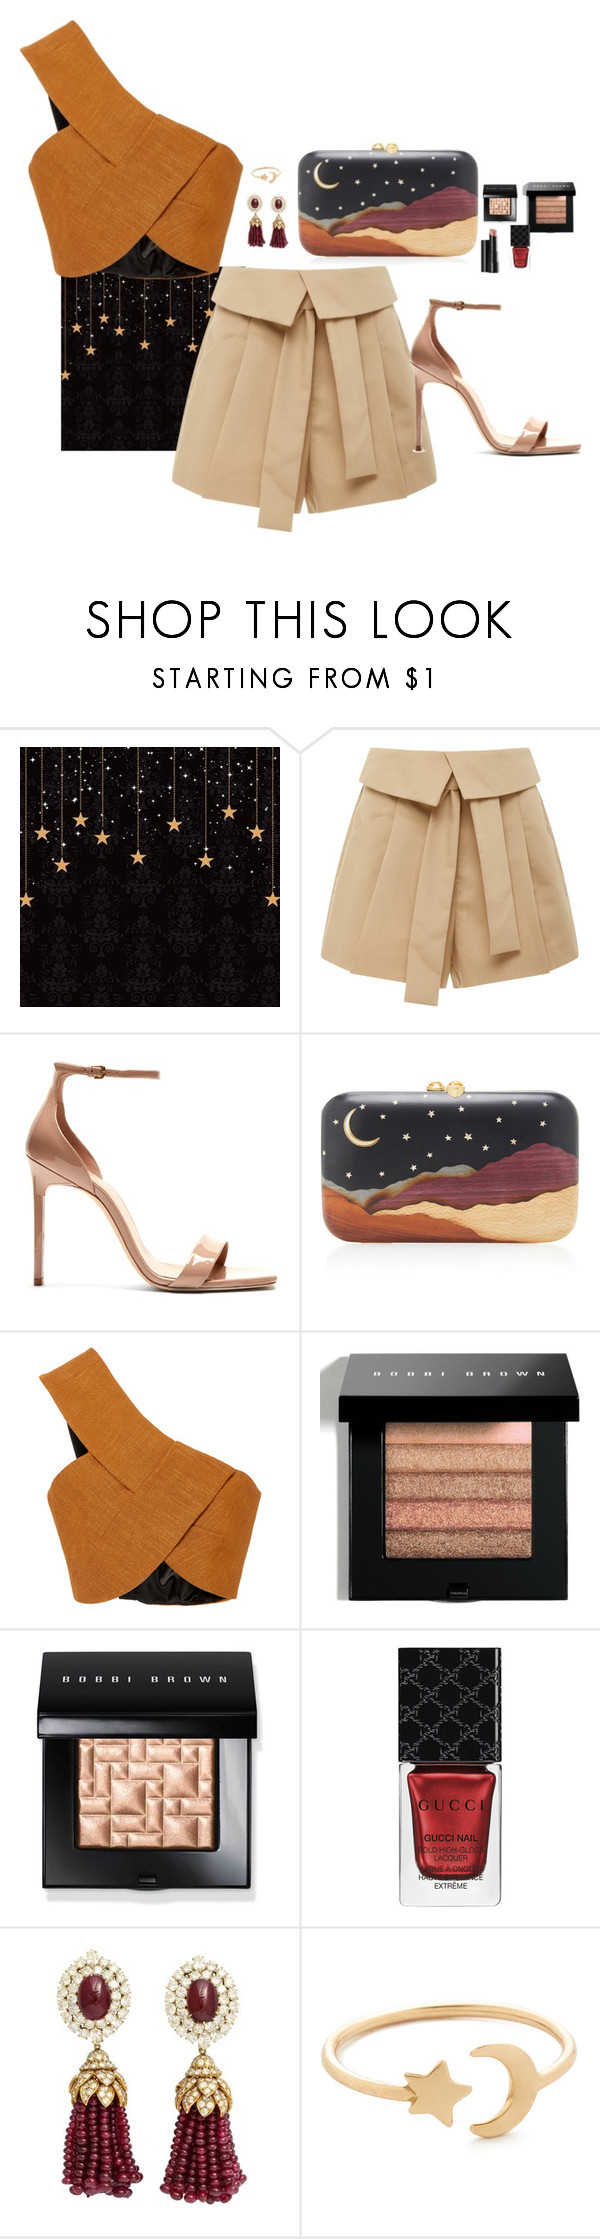 """""""Shorts on night"""" by claire86-c on Polyvore featuring moda, Acler, Yves Saint Laurent, Silvia Furmanovich, Rosetta Getty, Bobbi Brown Cosmetics, Arbonne, Gucci, Van Cleef & Arpels e Ariel Gordon"""